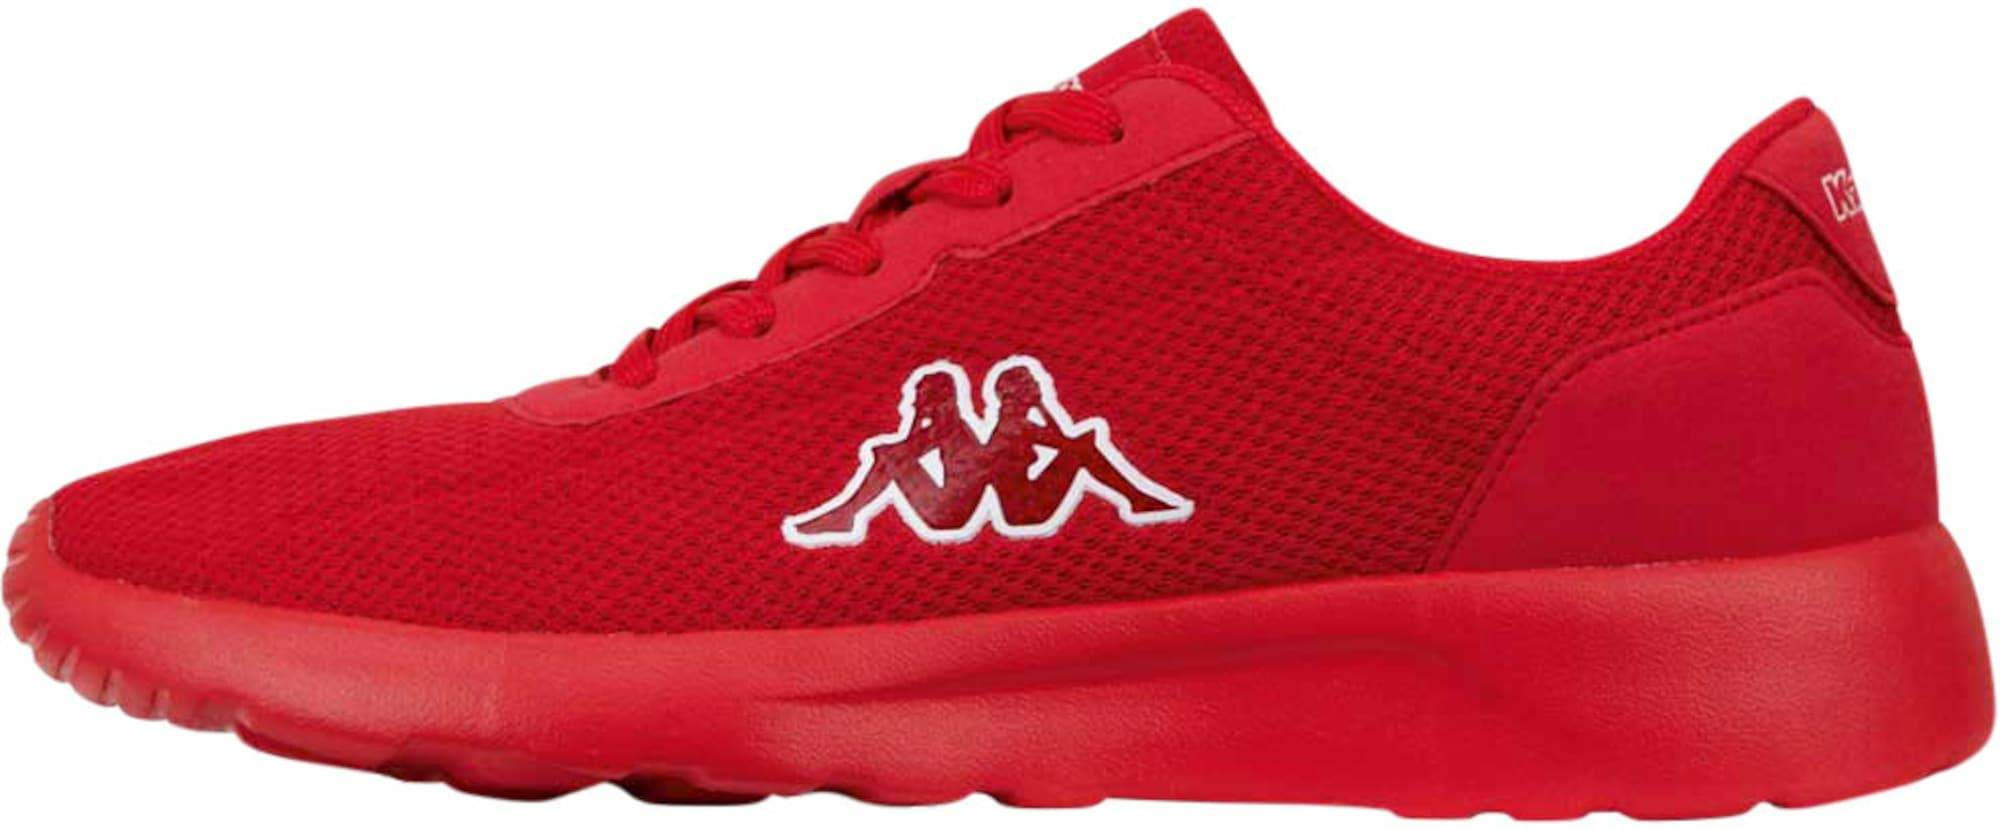 KAPPA Chaussure de course  - Rouge - Taille: 43 - male